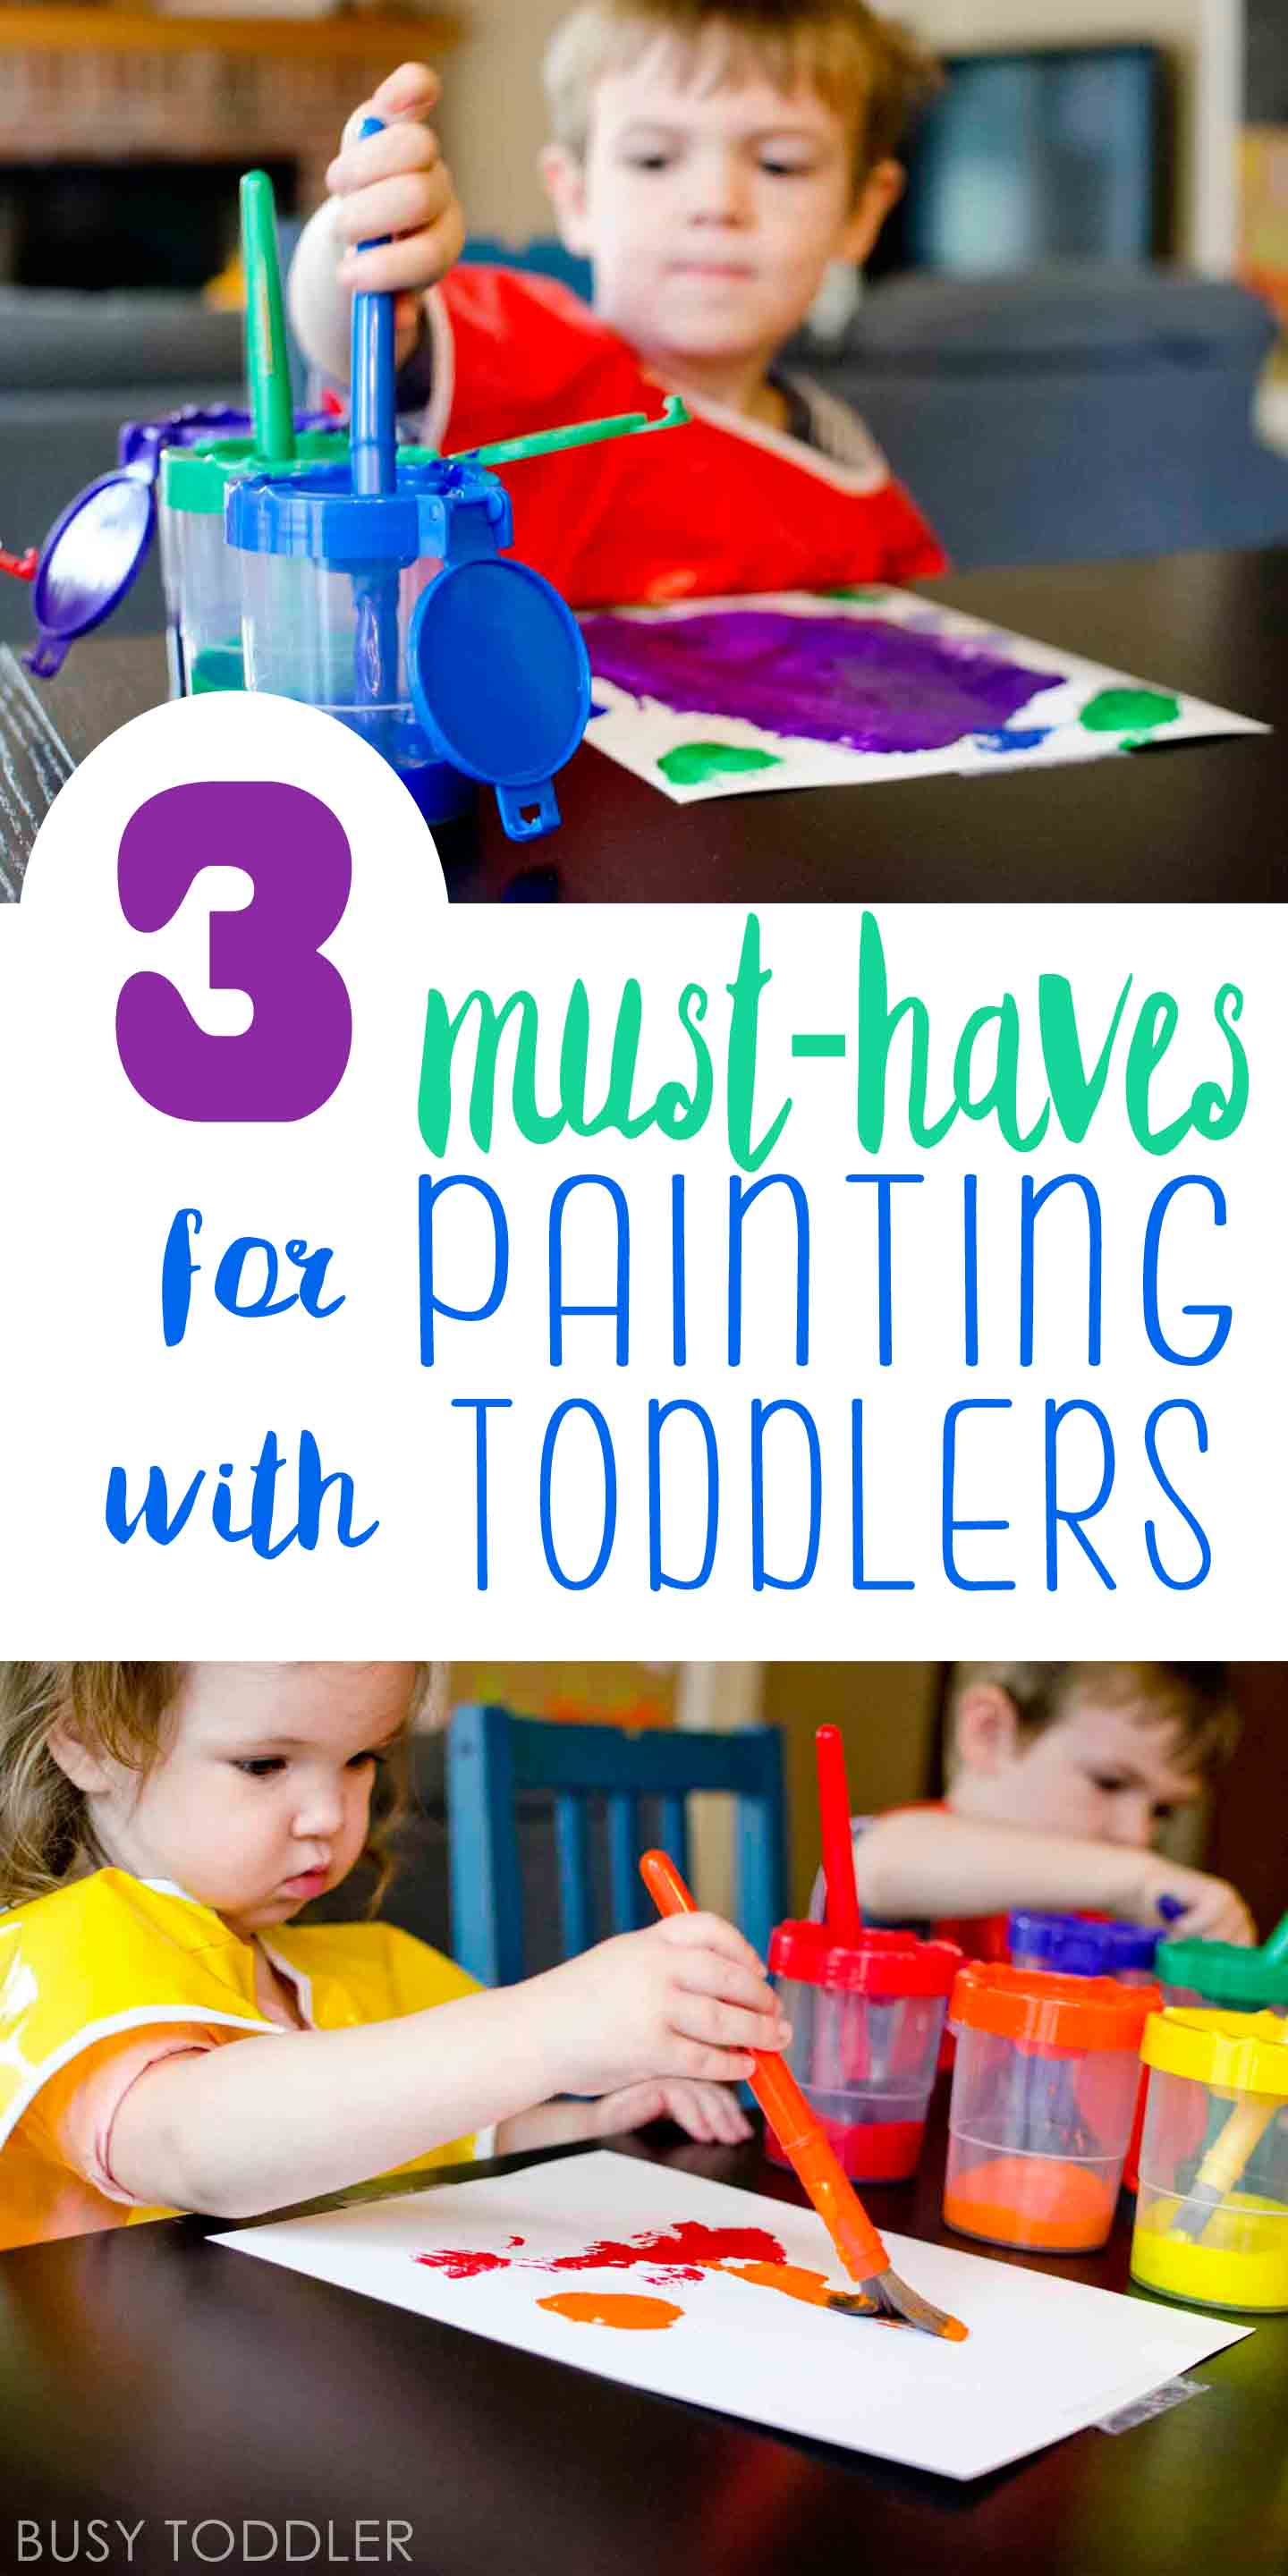 MUST-HAVES FOR PAINTING WITH TODDLERS: Check out these great ideas for keeping art time managable using products from Lakeshore. #ad.